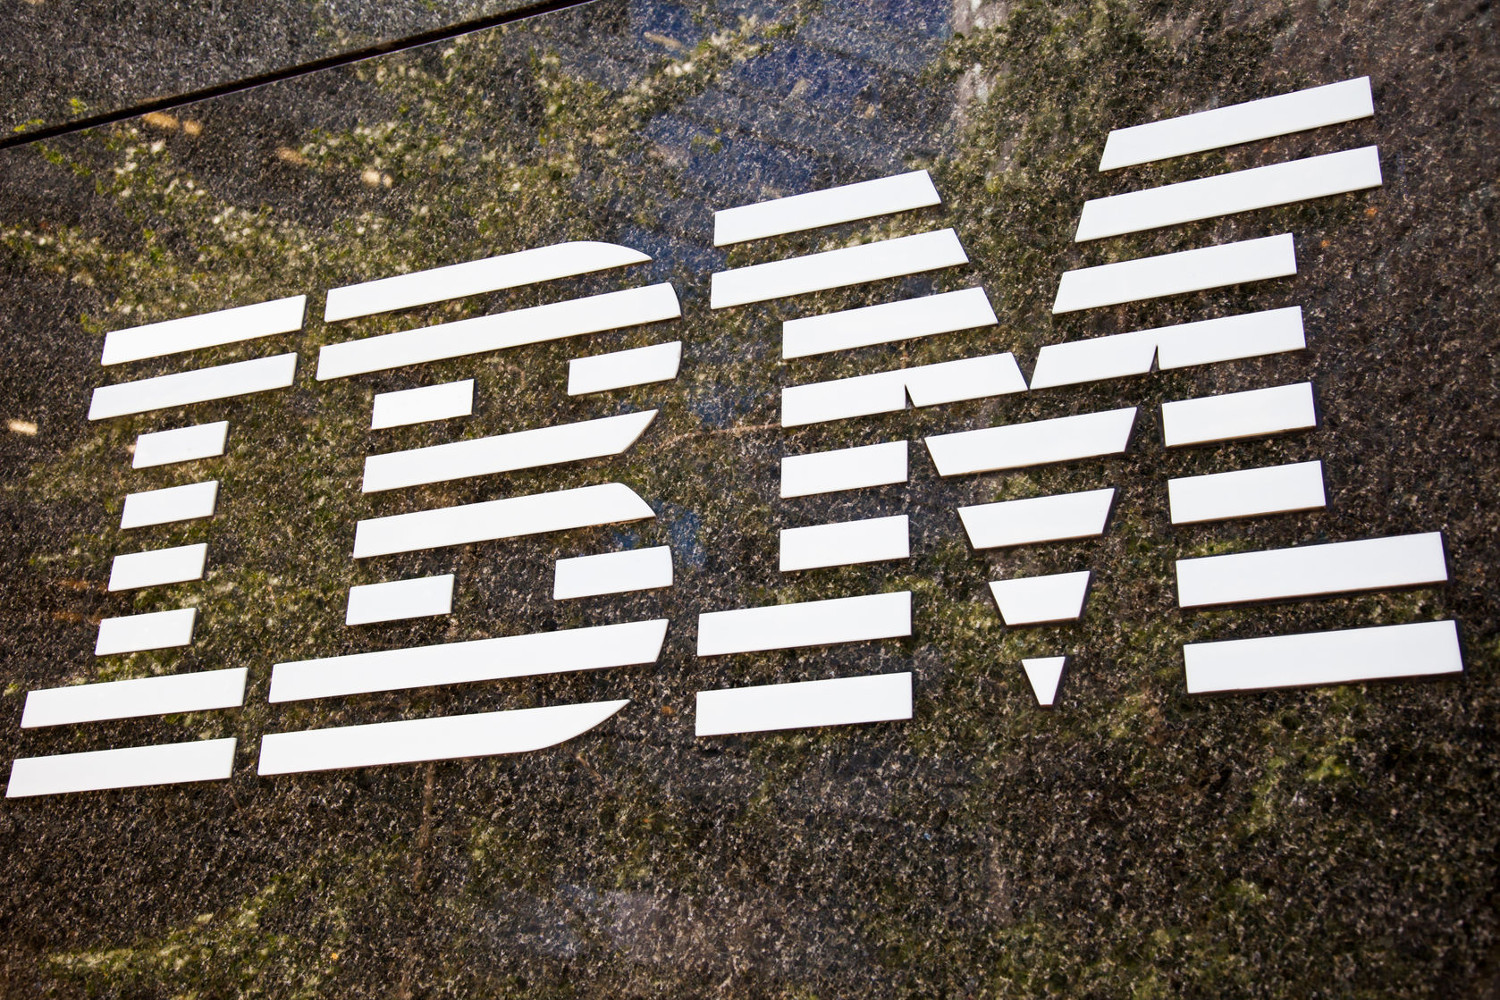 IBM attacks AMD's 'Zen' with new details about Power9 processors for servers